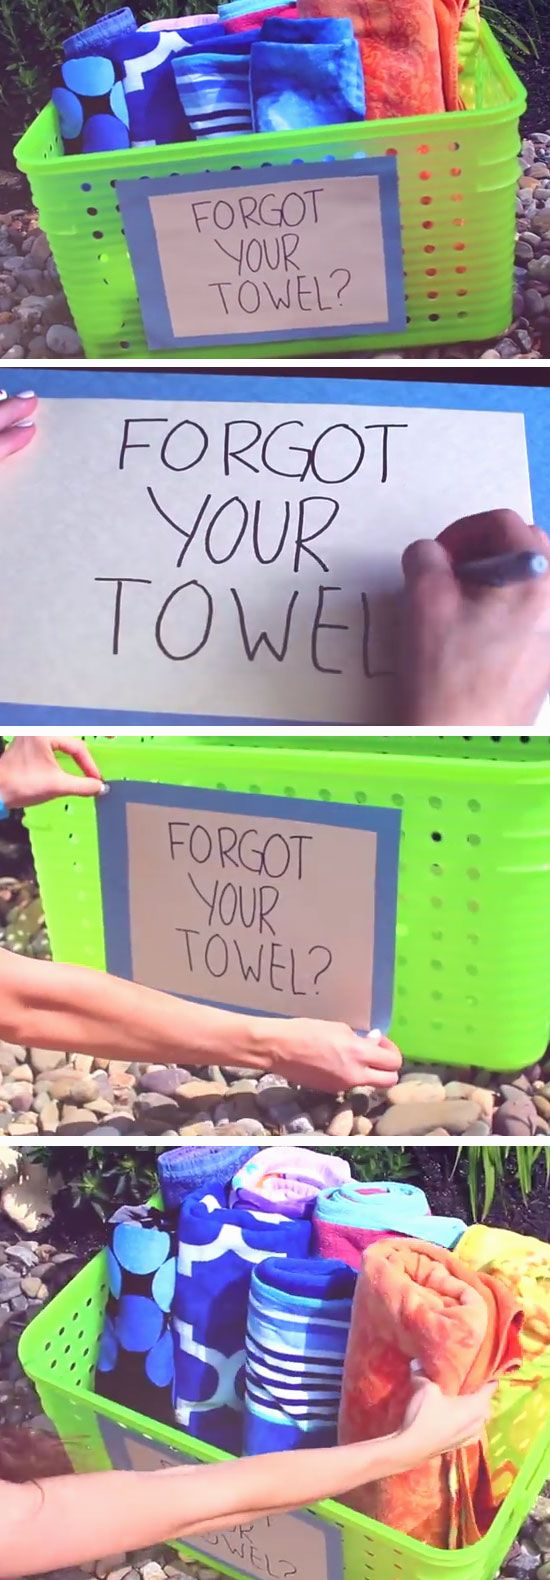 Spare Towel Basket | DIY Pool Party Ideas for Teens                                                                                                                                                      More